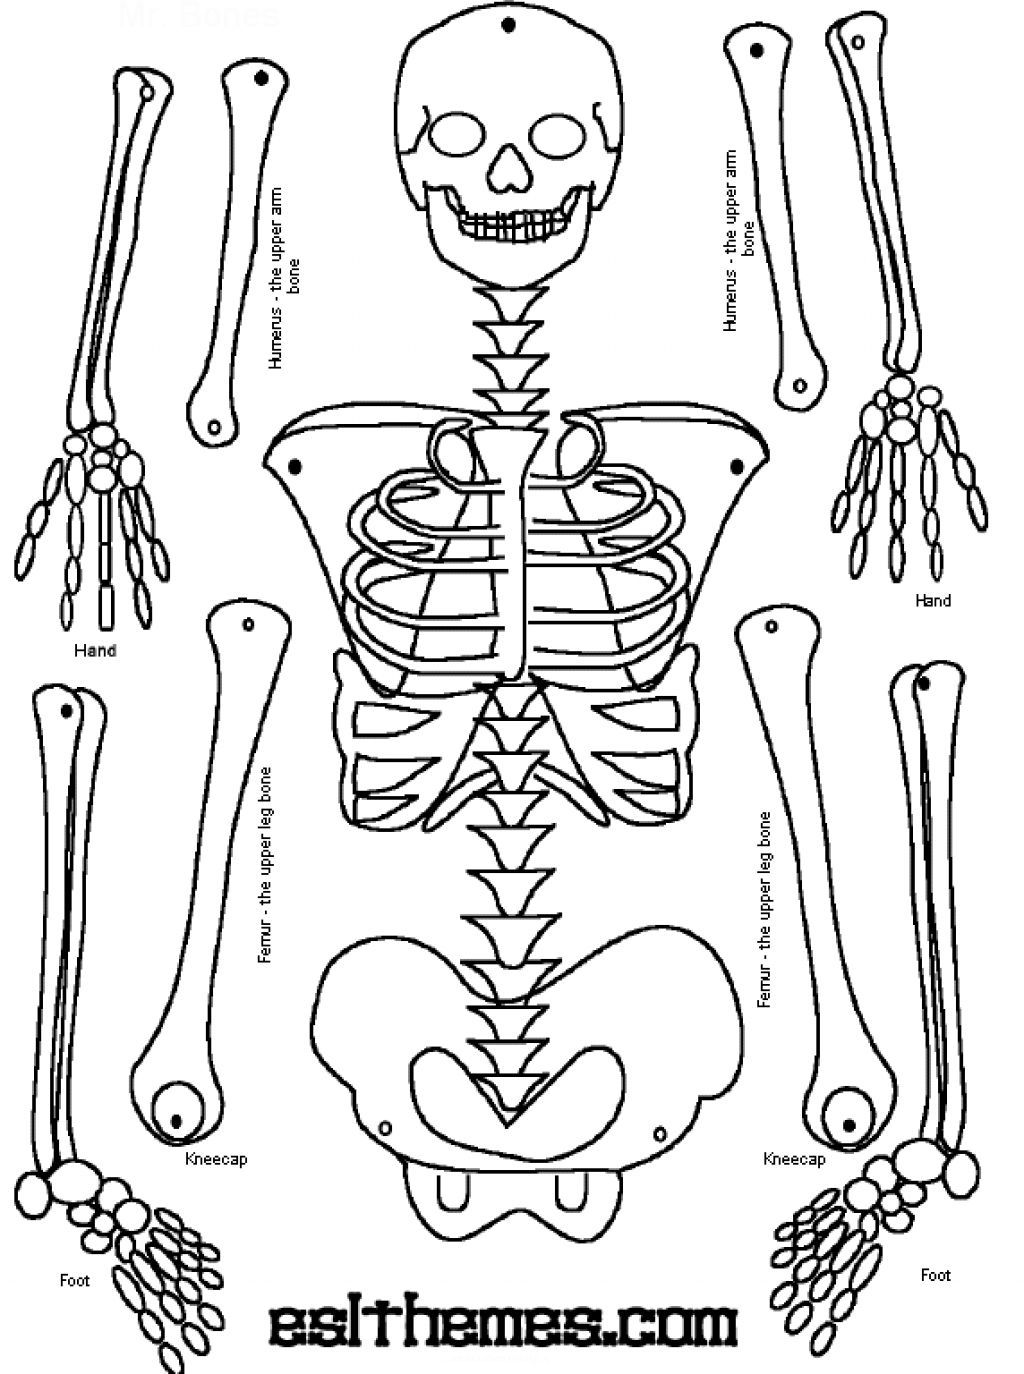 Skeleton puzzle printable print it pinterest for Skeleton template to cut out